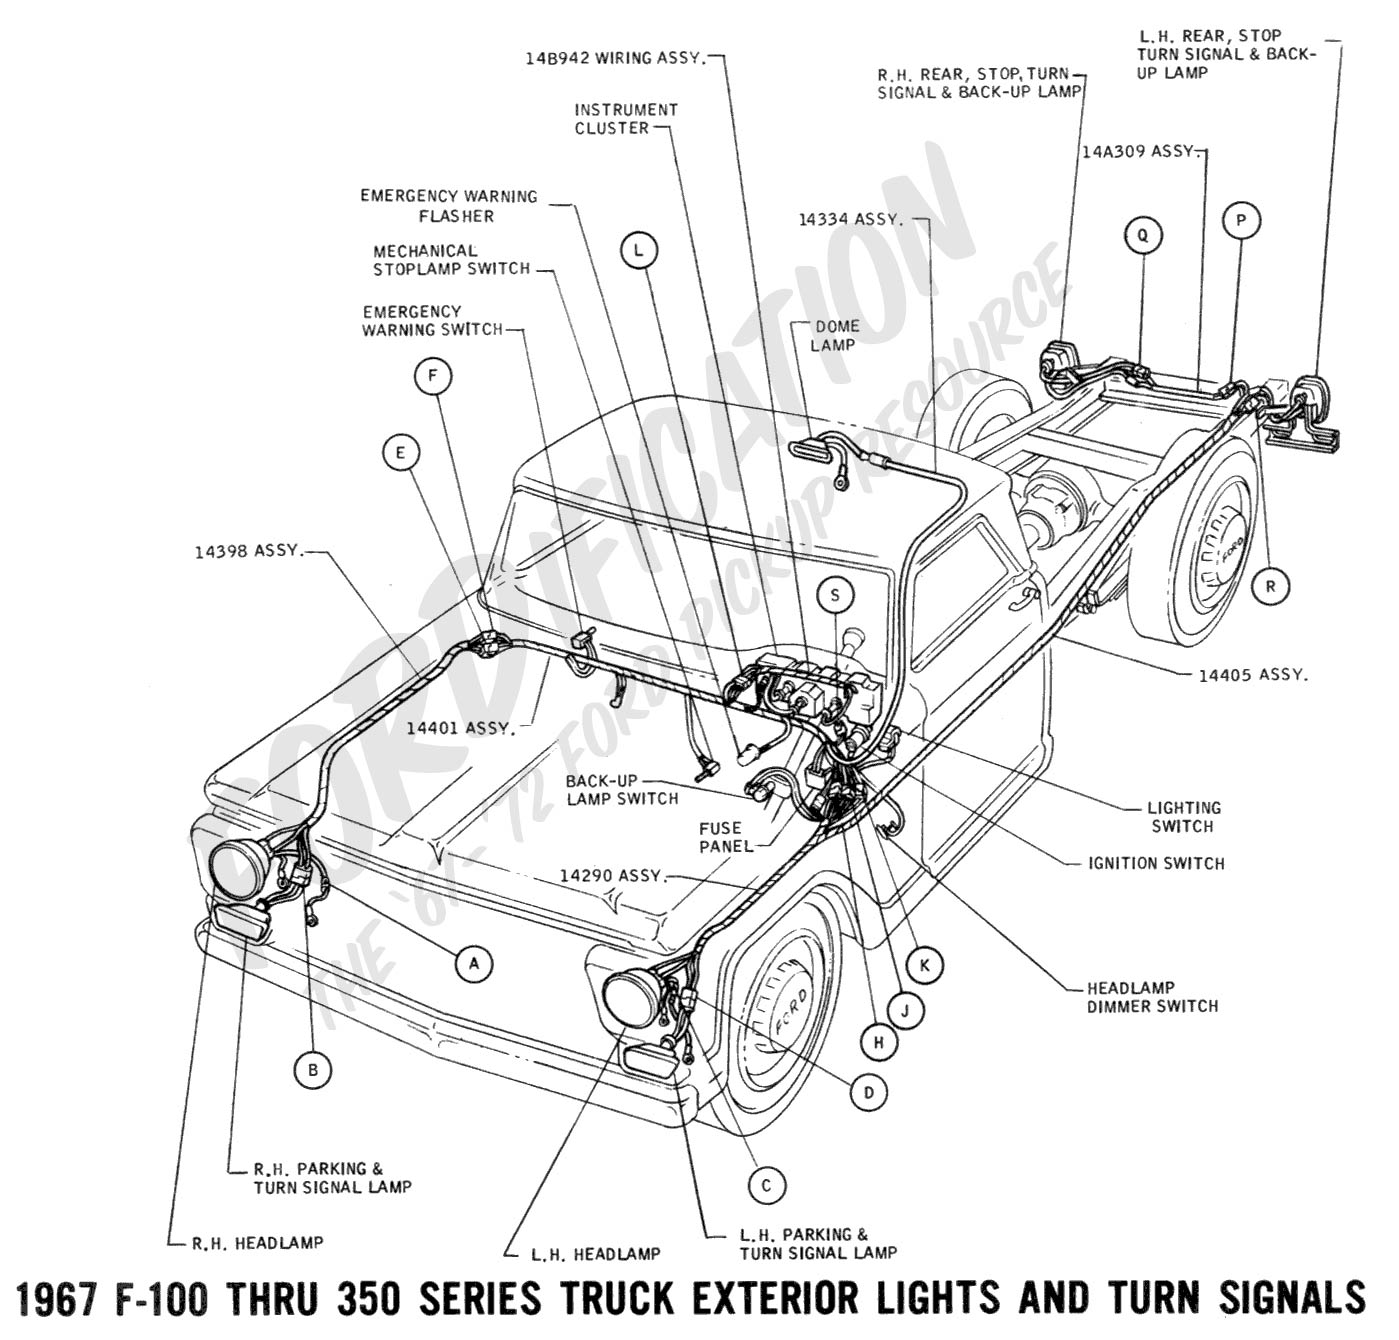 ford truck technical drawings and schematics section h wiring 2004 Ford Taurus Wiring Schematic  2010 Toyota Tundra Wiring Schematic 2010 ford f350 wiring diagram 2004 Ford F350 Wiring Schematic